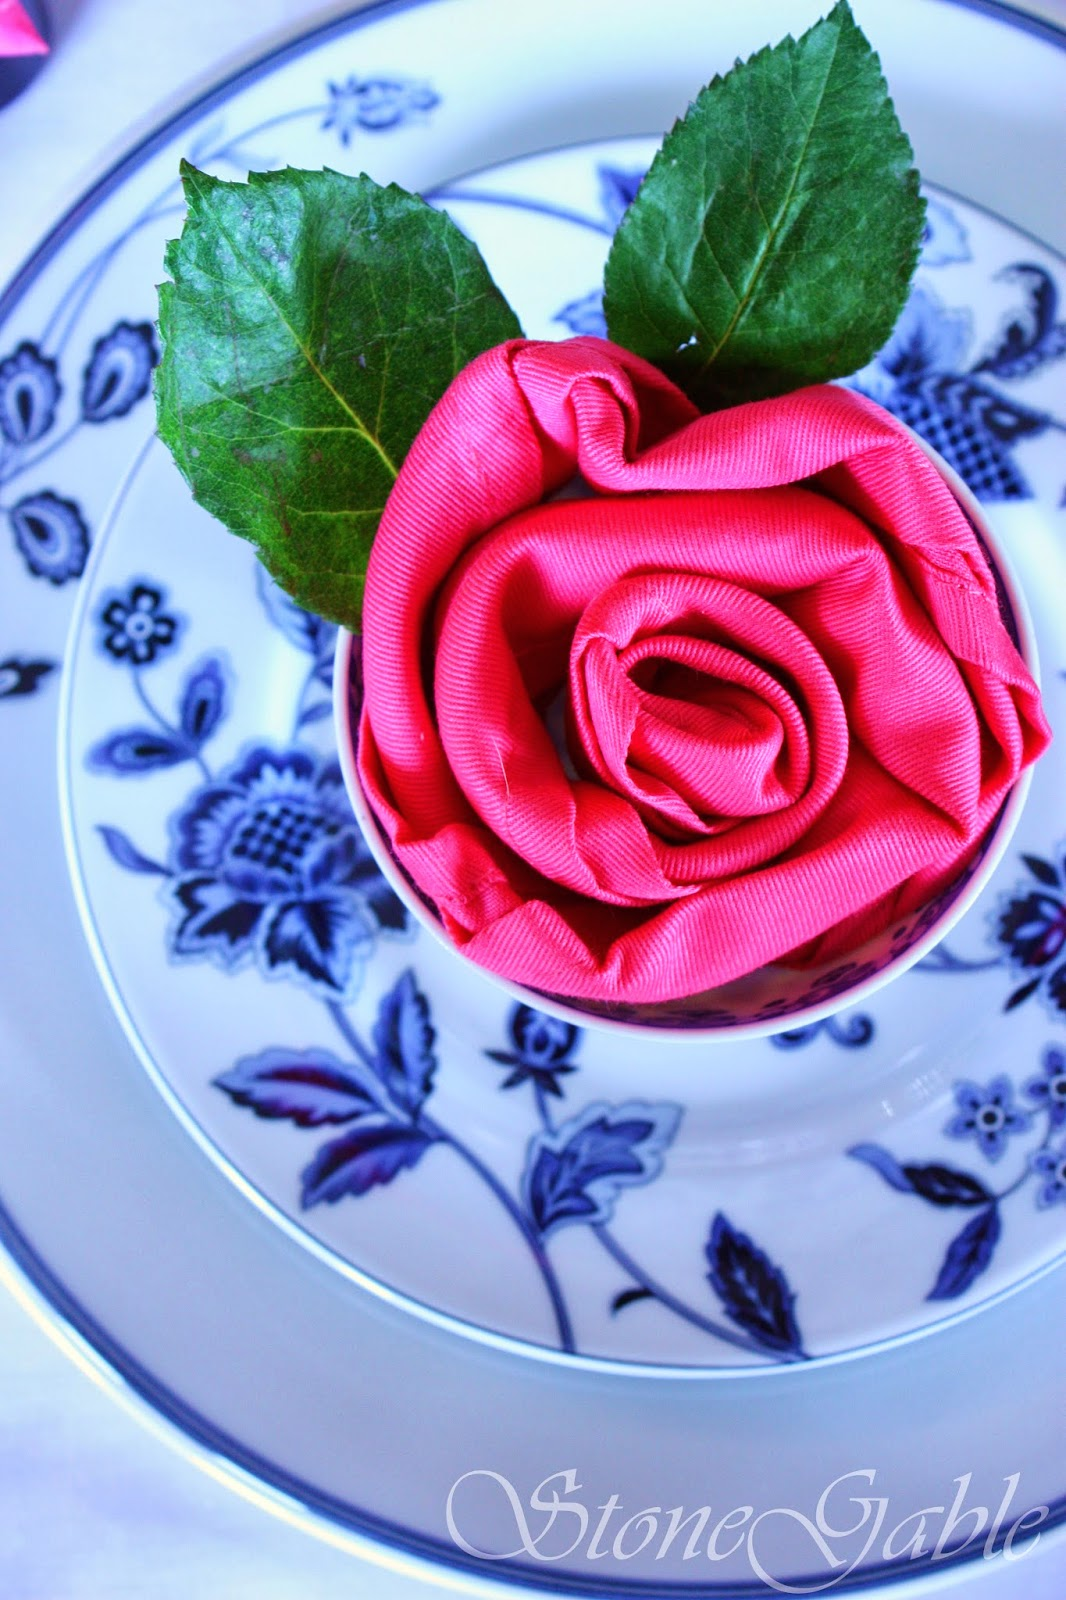 5 INTERESTING WAYS TO USE NAPKINS AND NAPKIN RINGS... A TABLESCAPE SERIES,  PART III   StoneGable